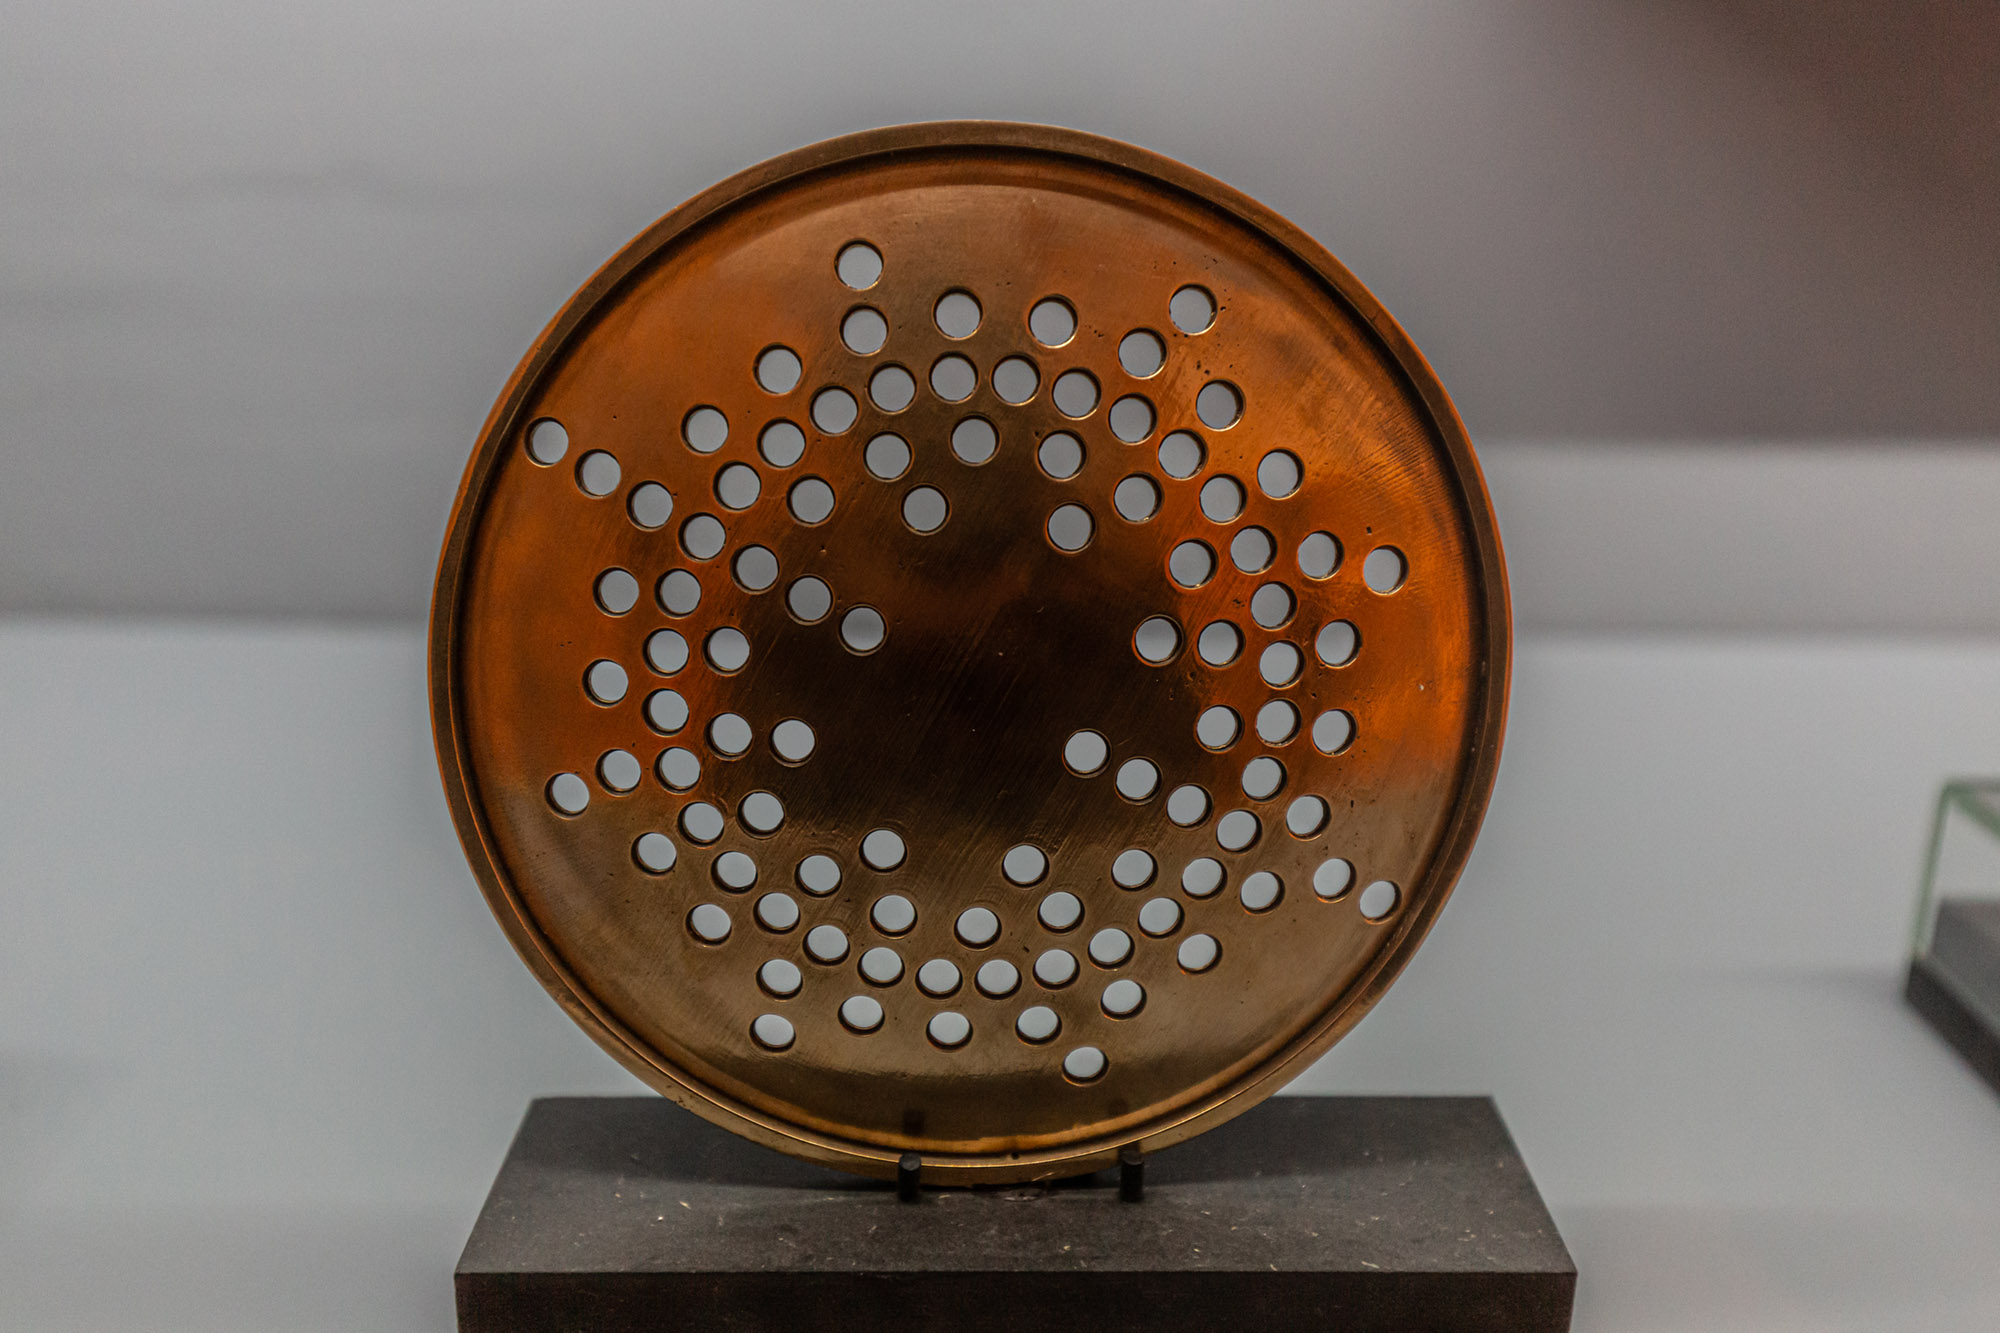 Close up of installation object consisting of a bronze disk with small drilled holes in an irregular circular pattern mirroring that of the